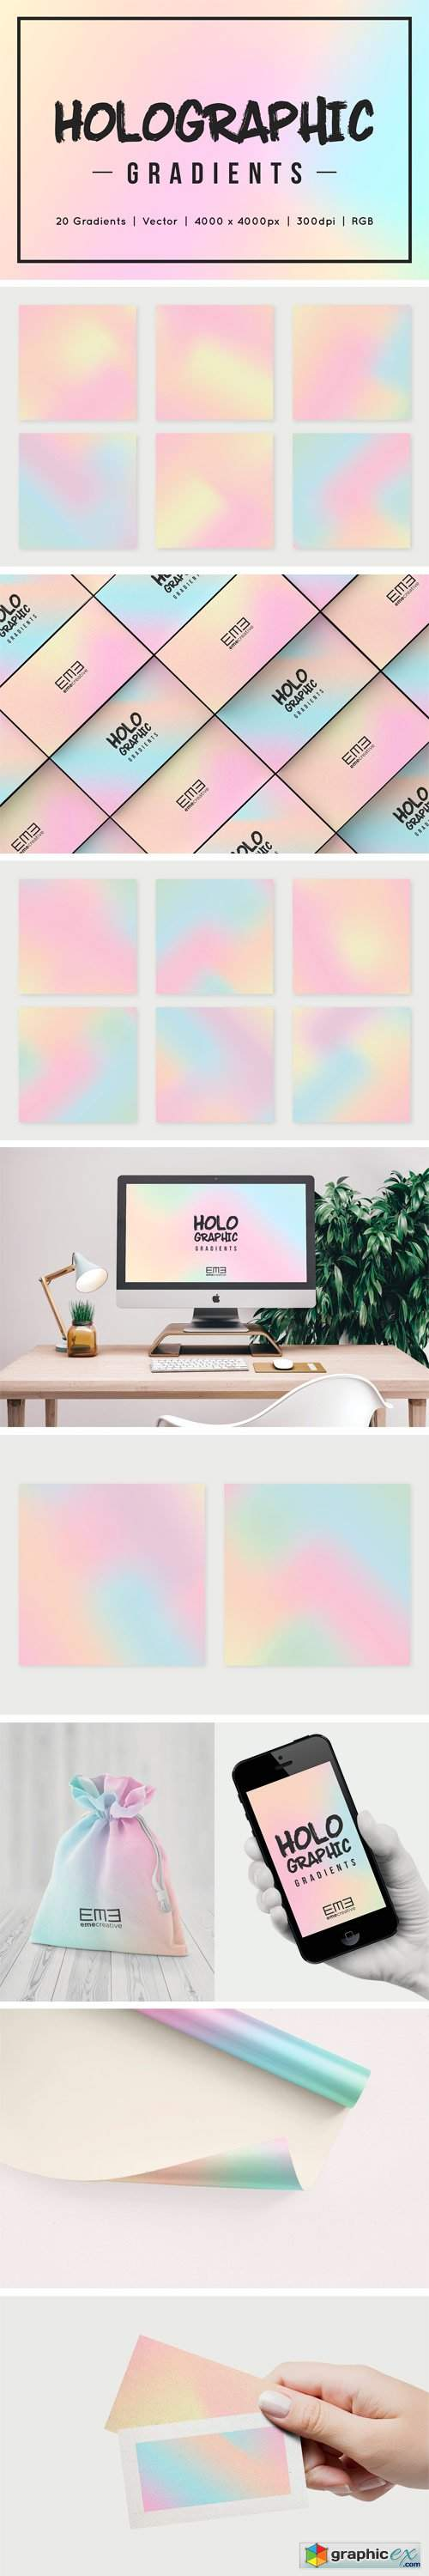 Holographic Gradients 2623448